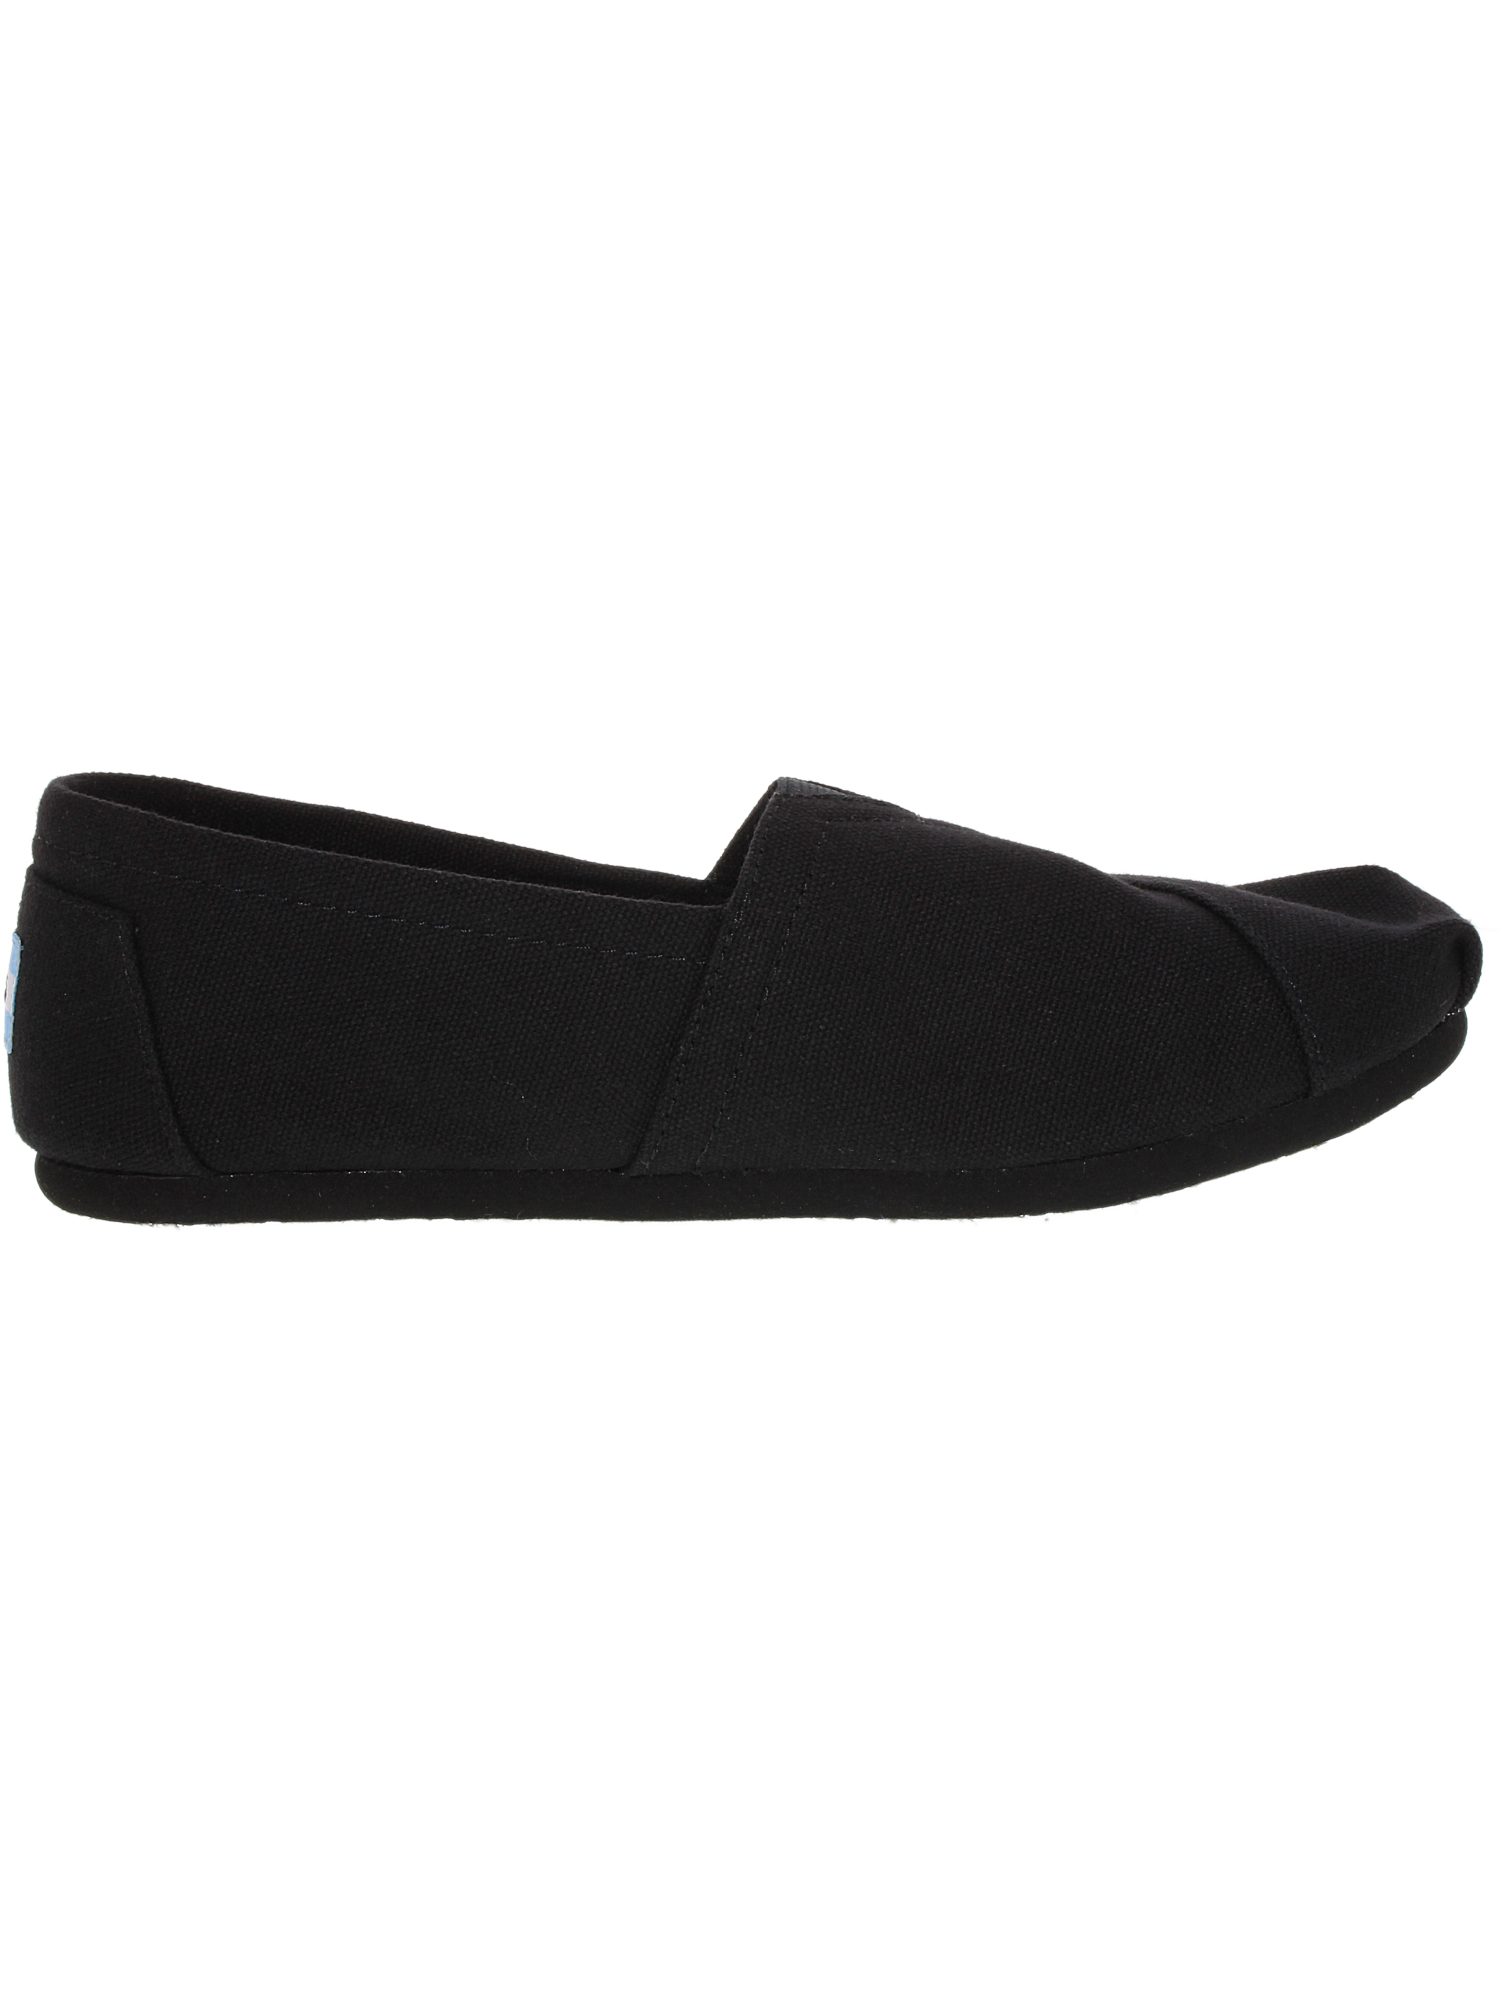 Toms-Women-039-s-Classic-Canvas-Ankle-High-Slip-On-Shoes thumbnail 11